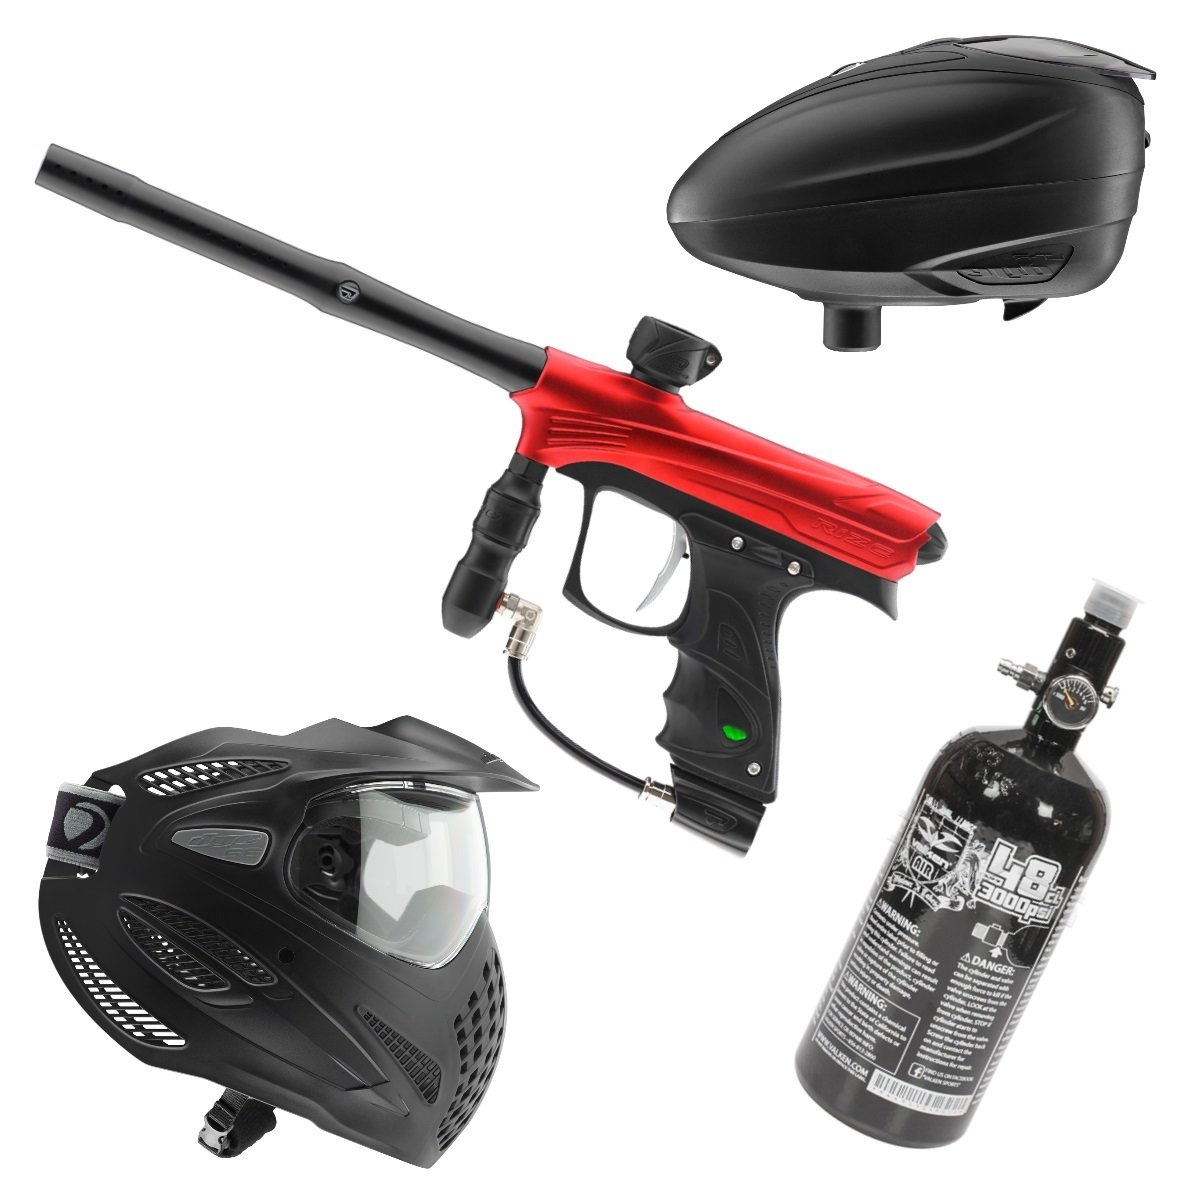 Marker Package - Dye Rize Marker - Red Dust / Dye LT-R Black / Dye Se Goggle Single / Valken 48cu 3000 psi Air Tank